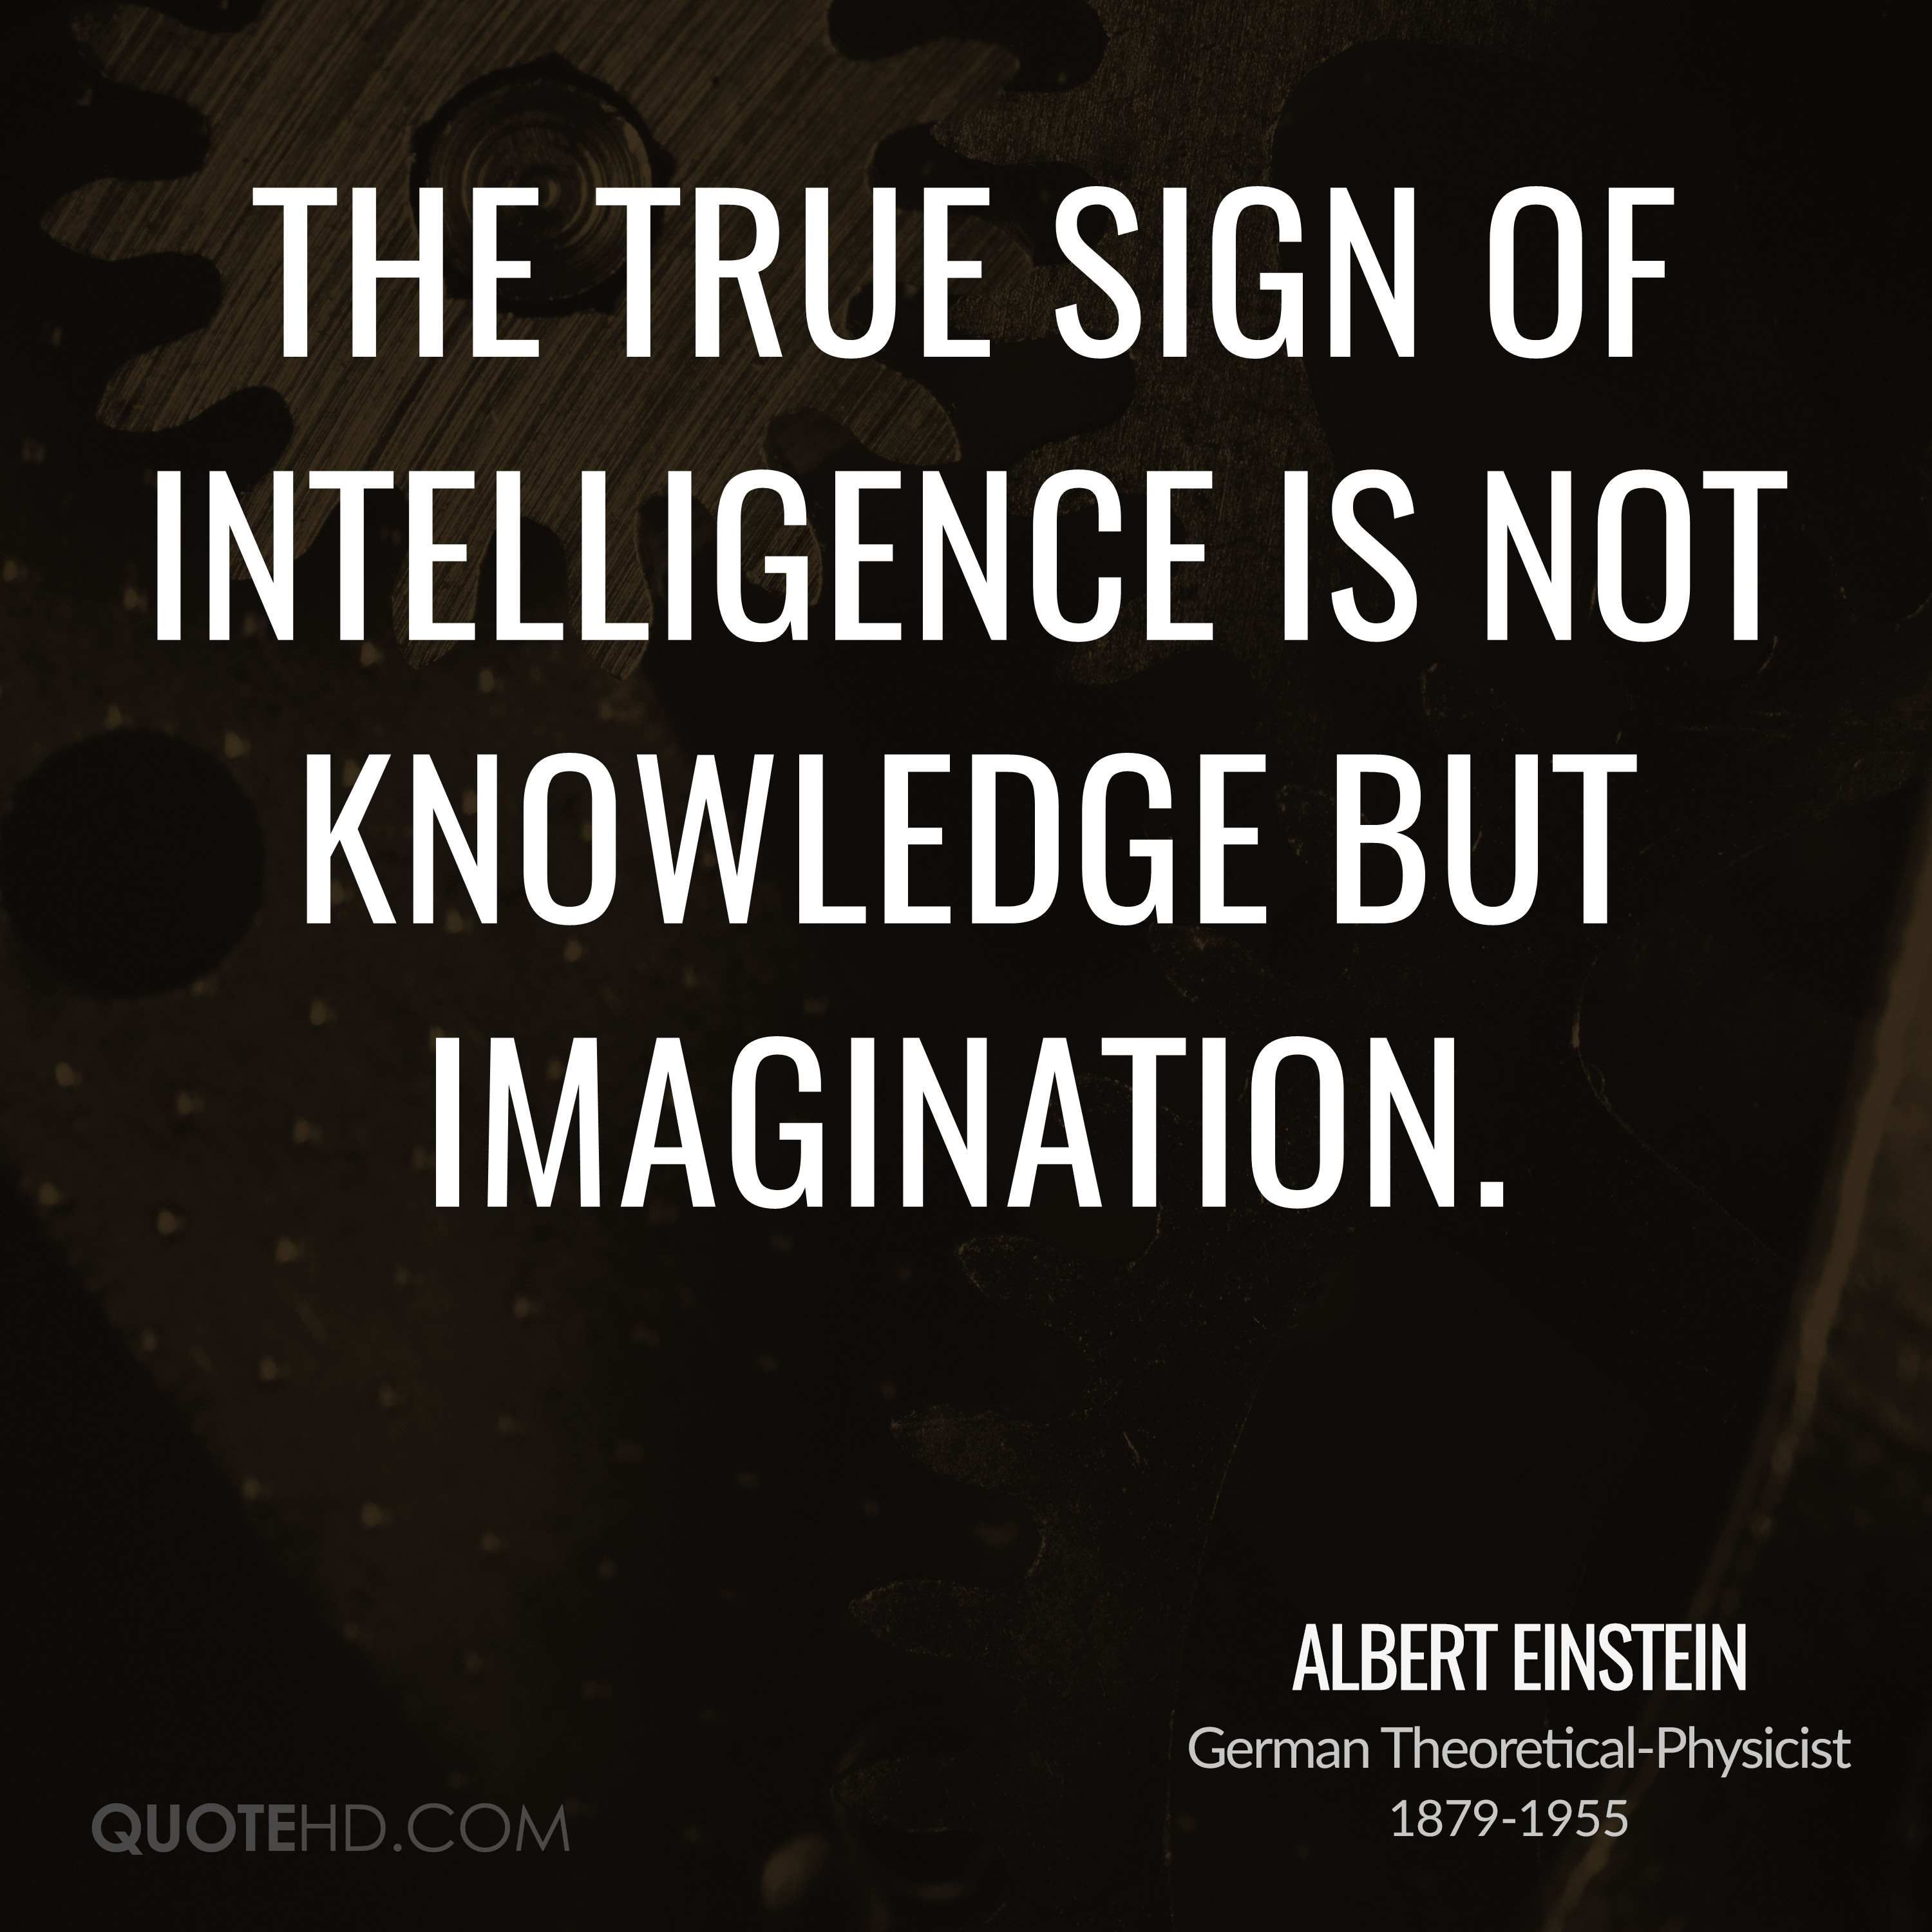 Albert Einstein Quotes The True Sign Of Intelligence Is Not Knowledge But Imagination